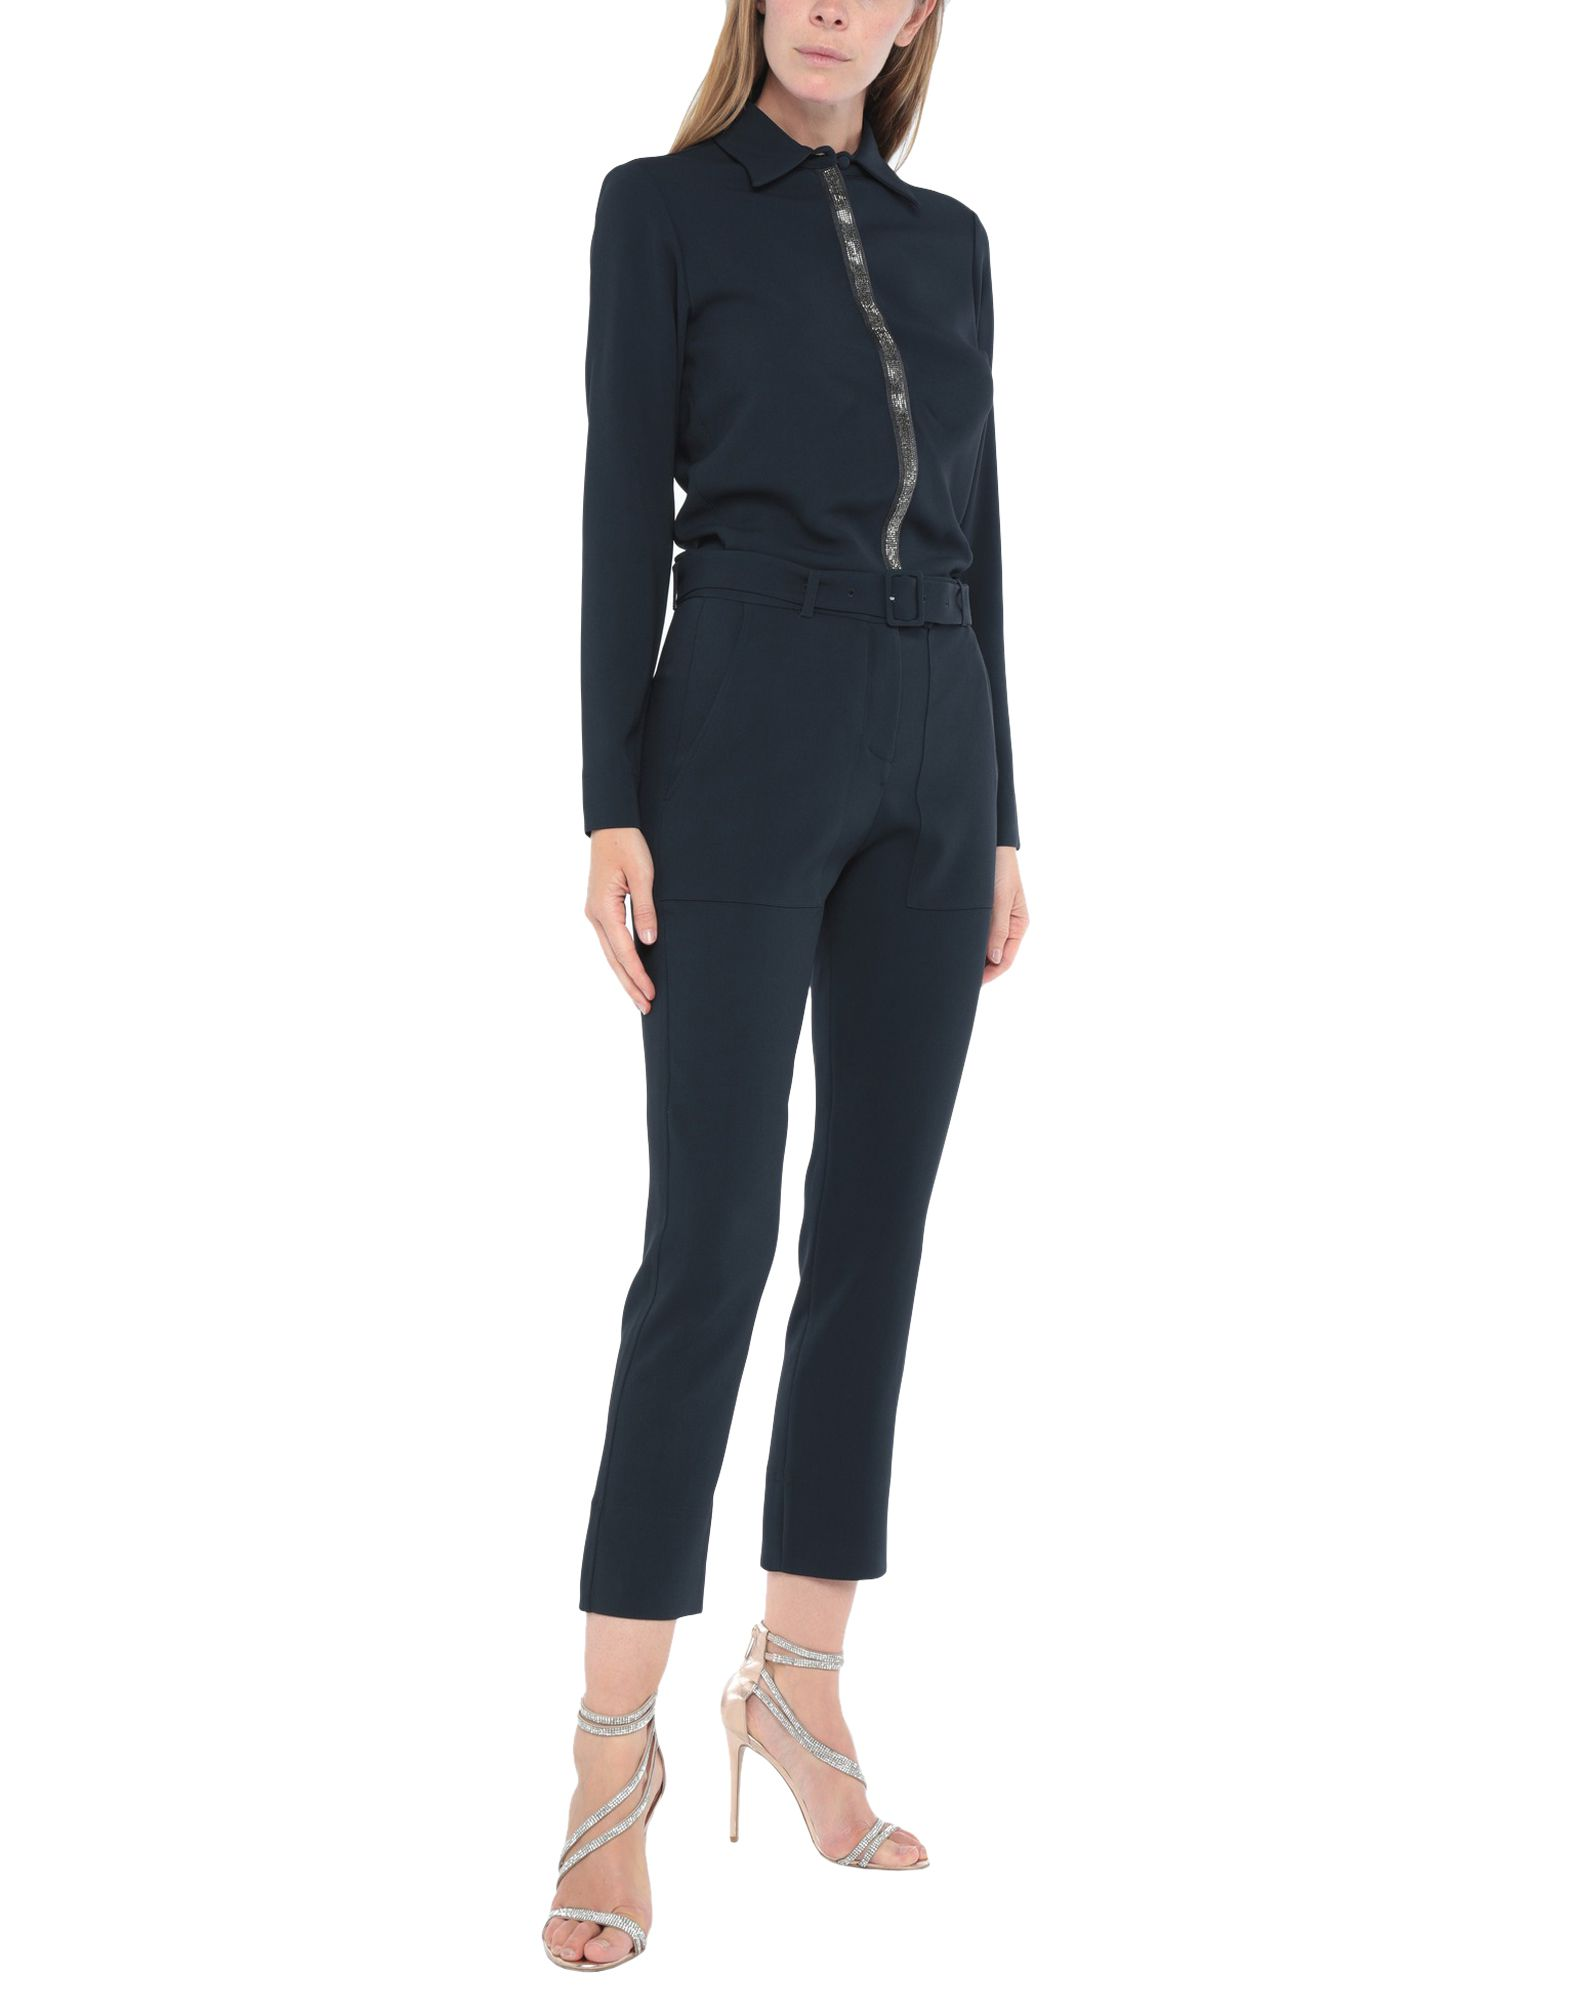 ELEVENTY Jumpsuits. contains non-textile parts of animal origin, crepe, belt, rhinestones, basic solid color, long sleeves, classic neckline, multipockets, front closure, snap buttons fastening, stretch. 51% Viscose, 46% Acetate, 3% Elastane, Polyester